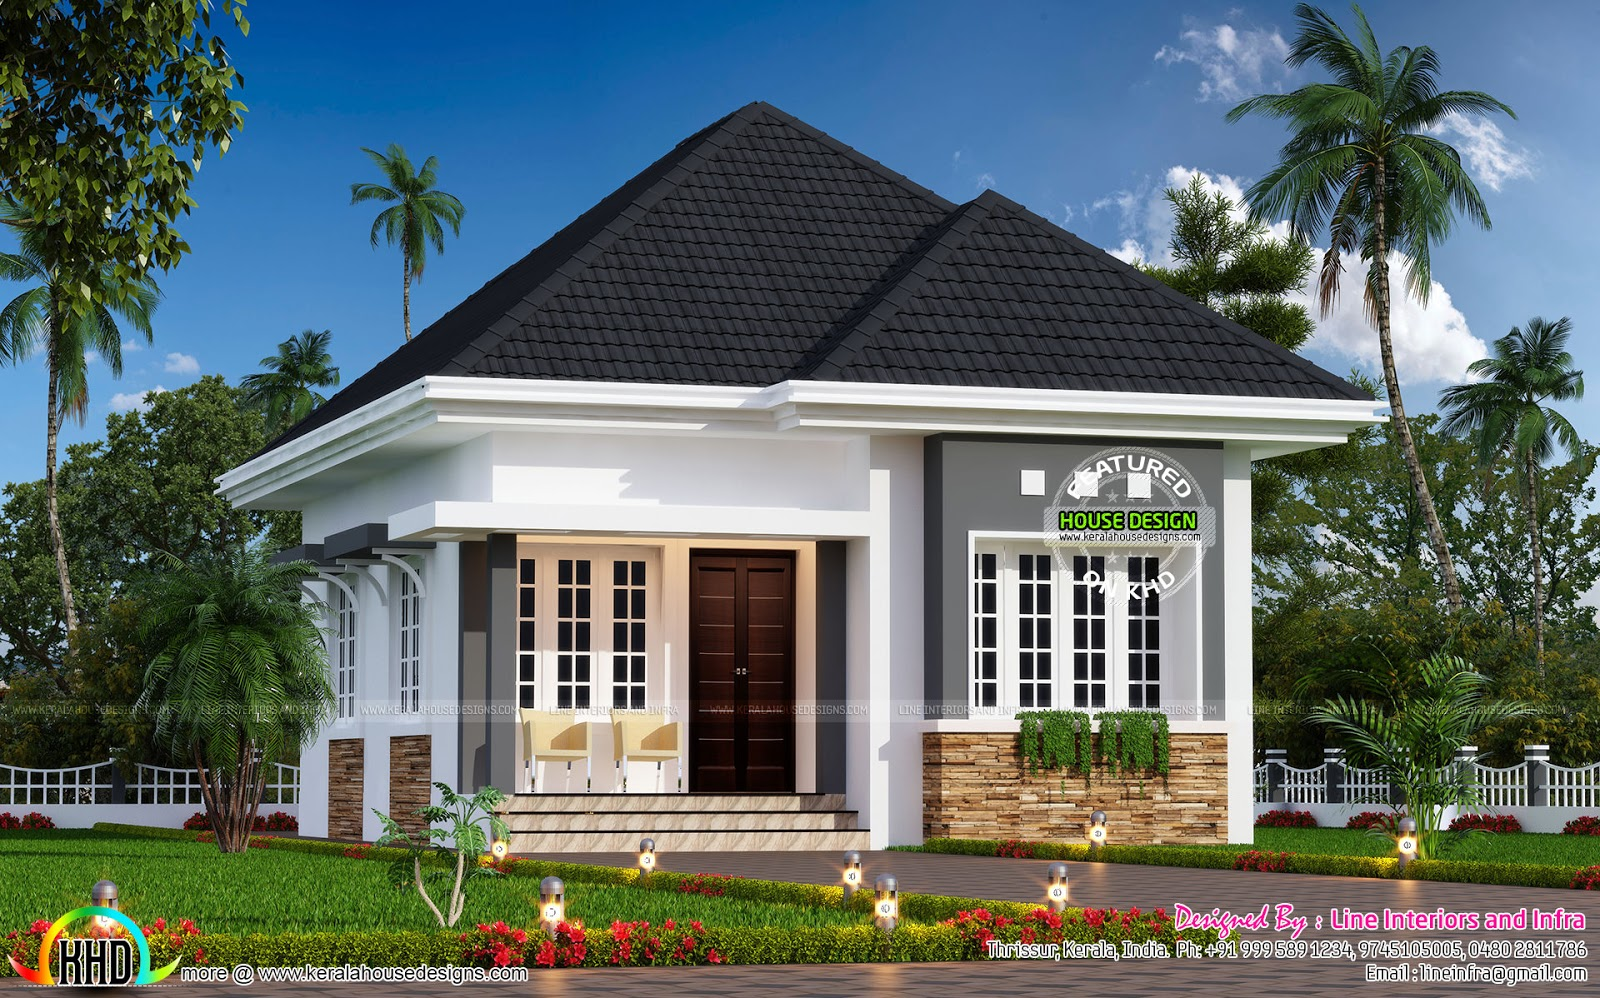 Cute little small house plan kerala home design and for Small house architecture design philippines